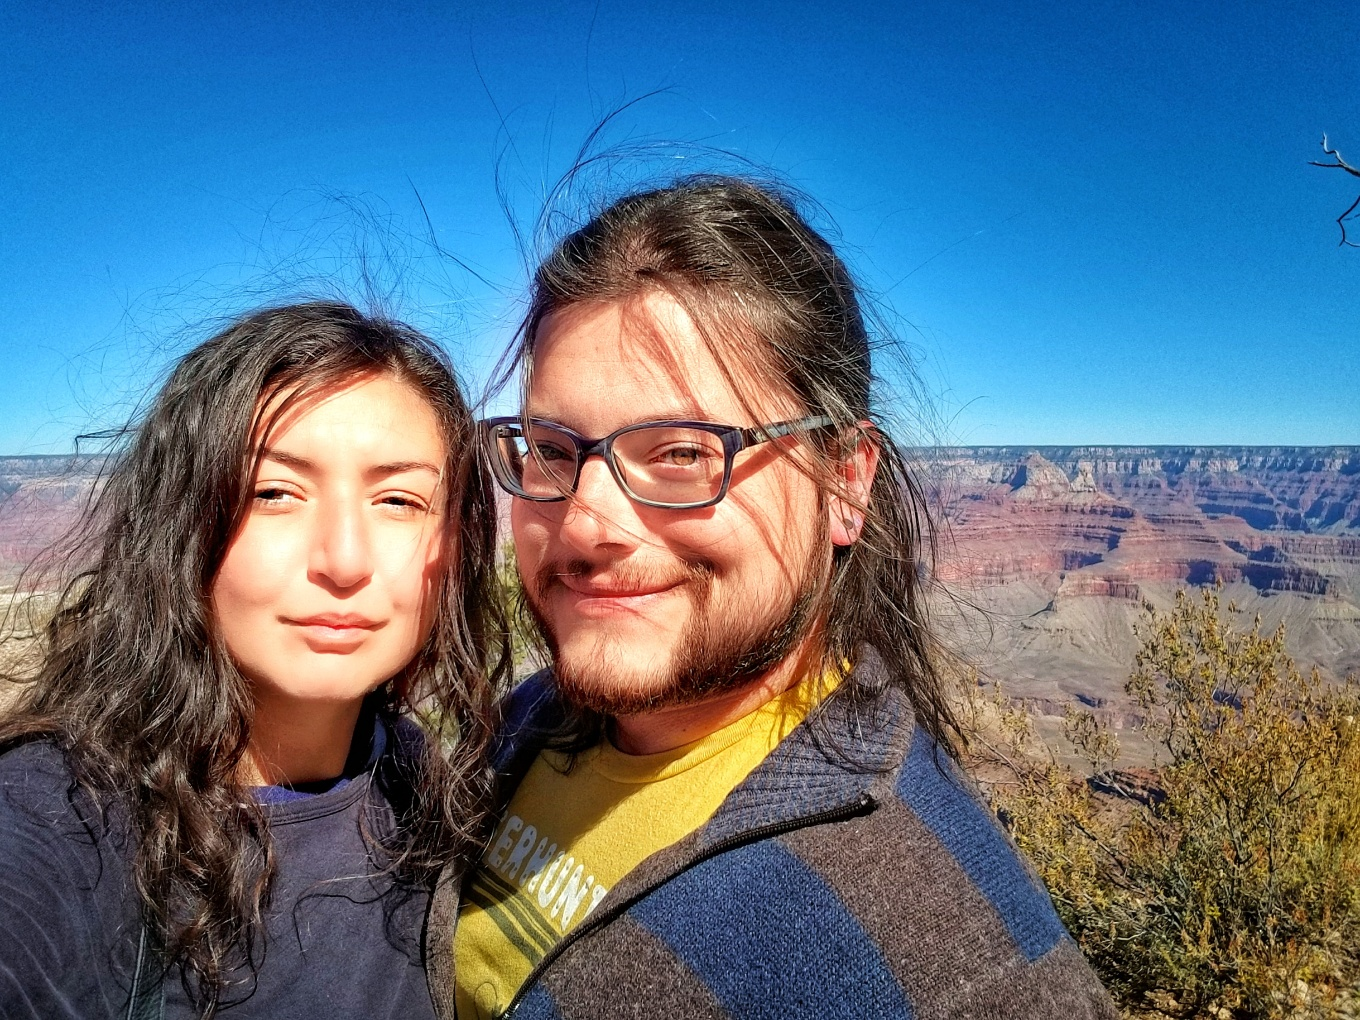 J and Y at Grand Canyon National Park, South Rim